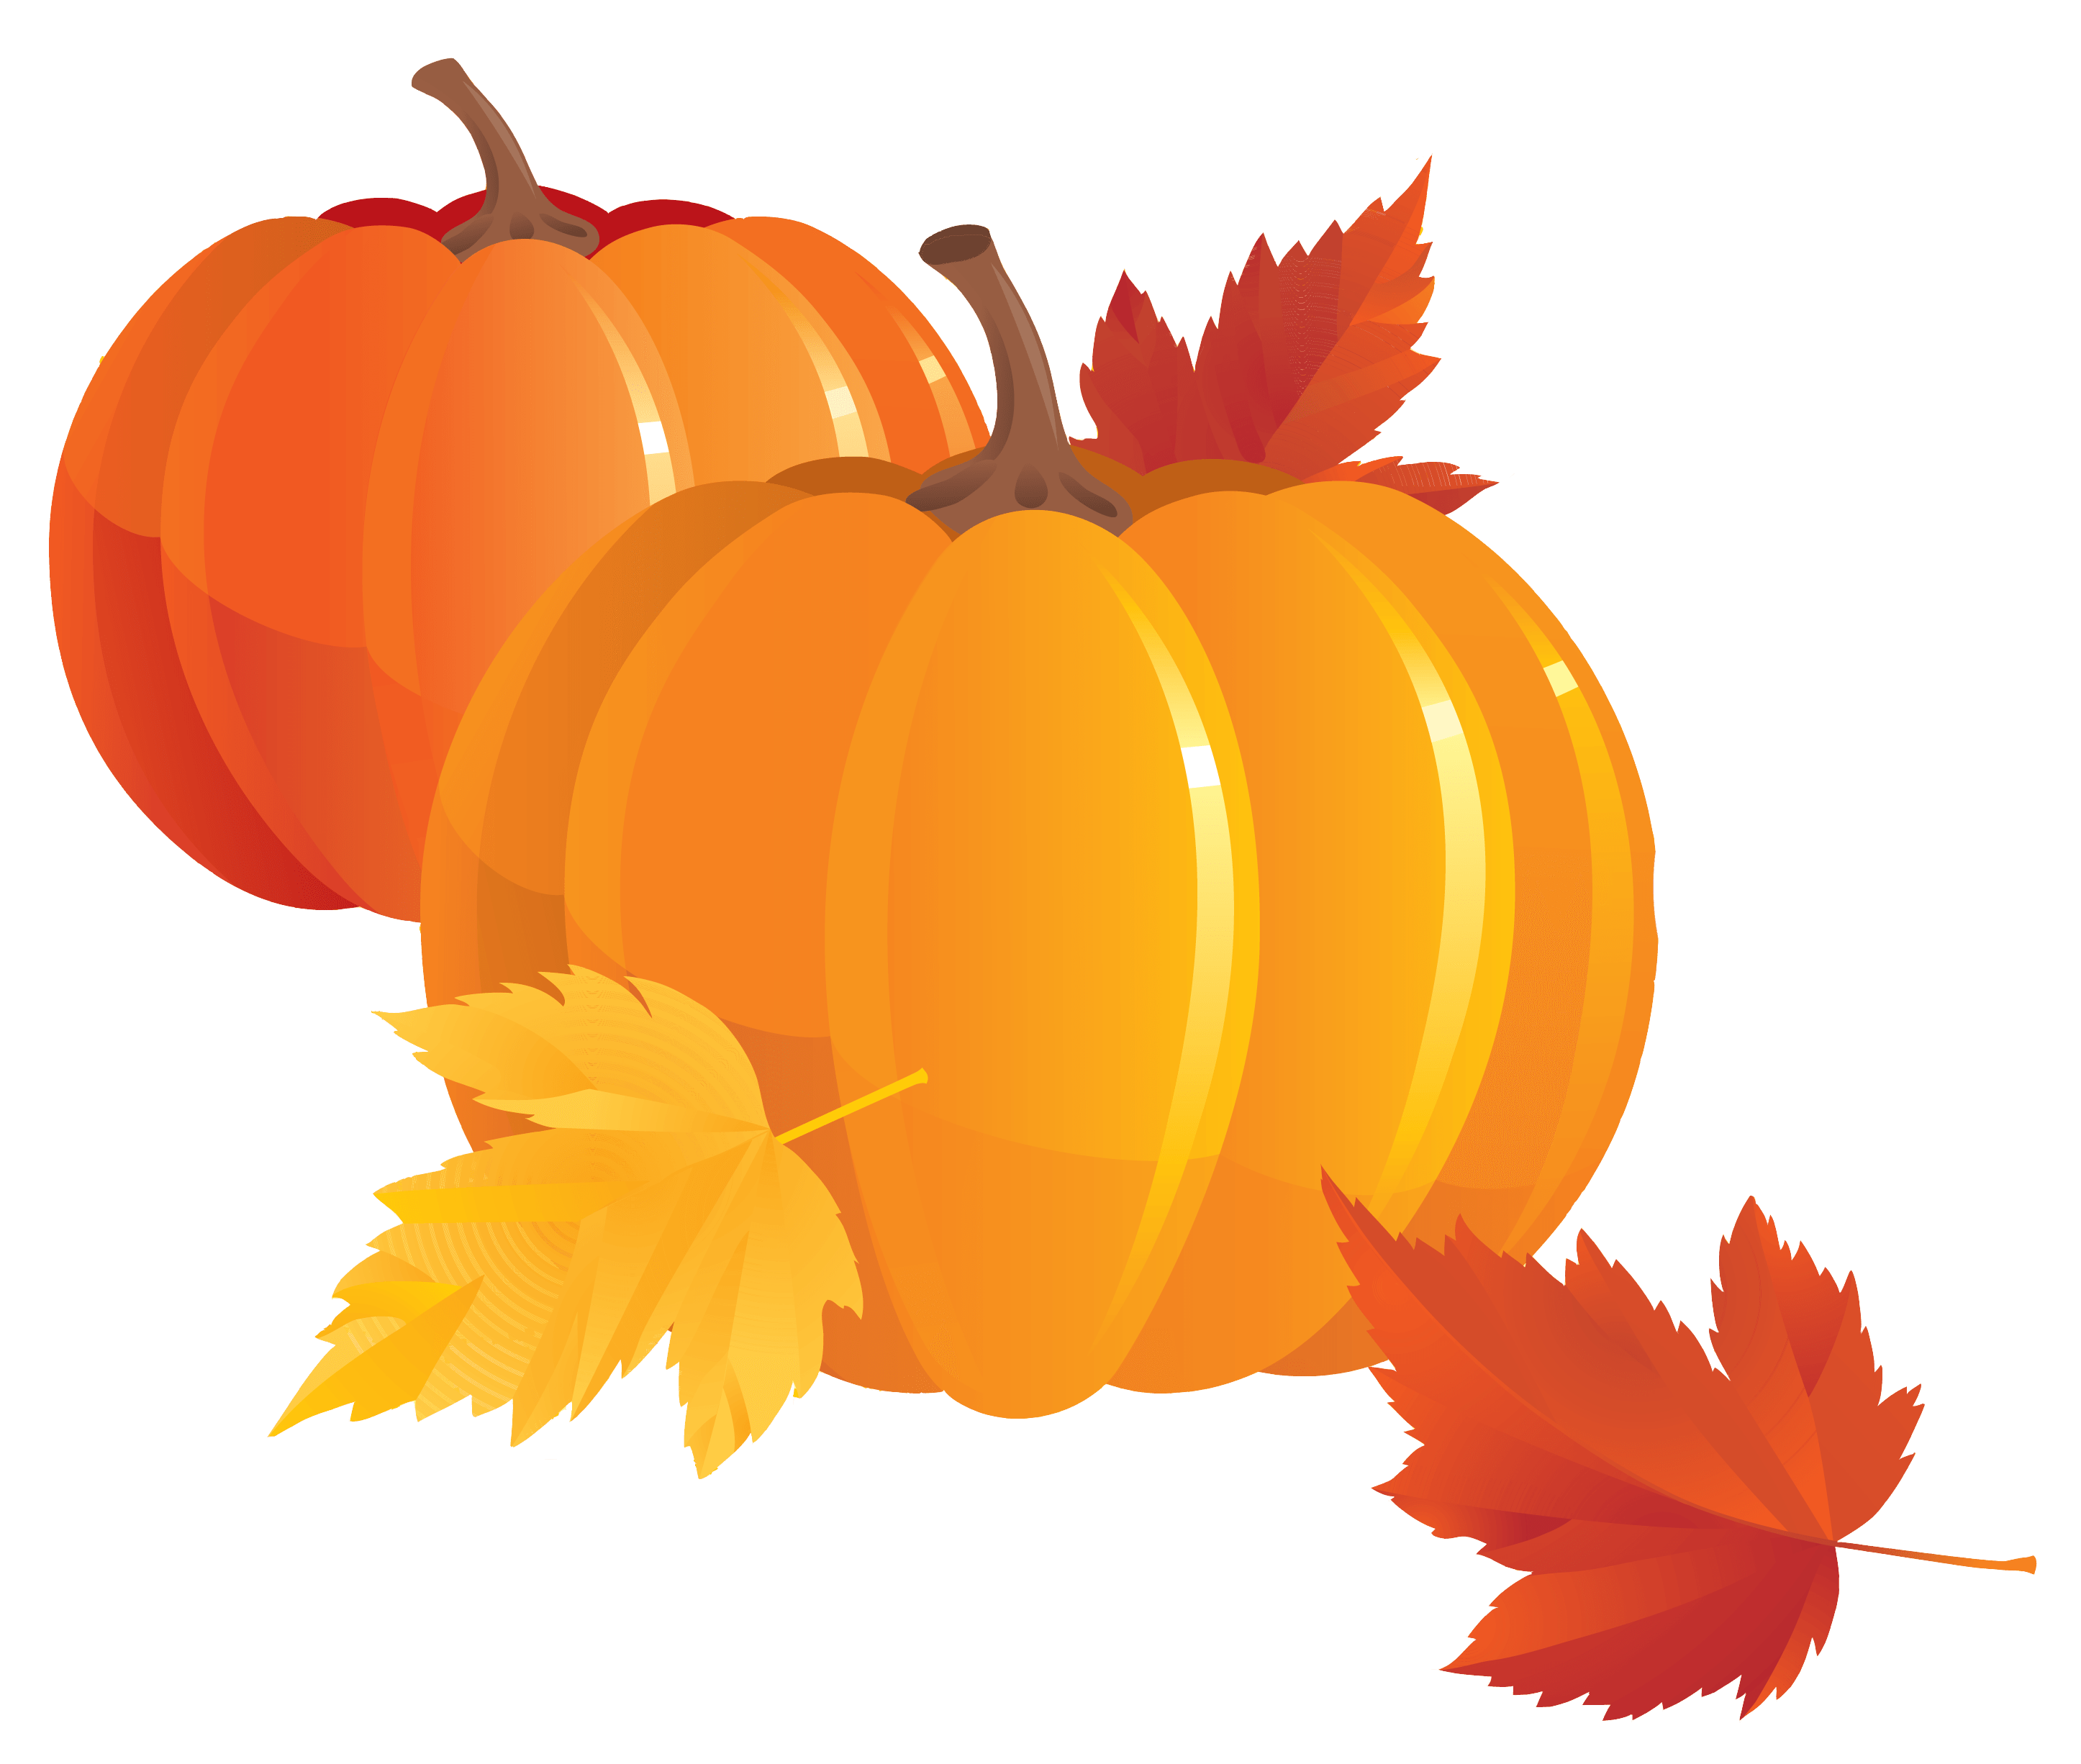 Fall clipart pumpkin clip art royalty free Autumn Pumpkin transparent PNG - StickPNG clip art royalty free